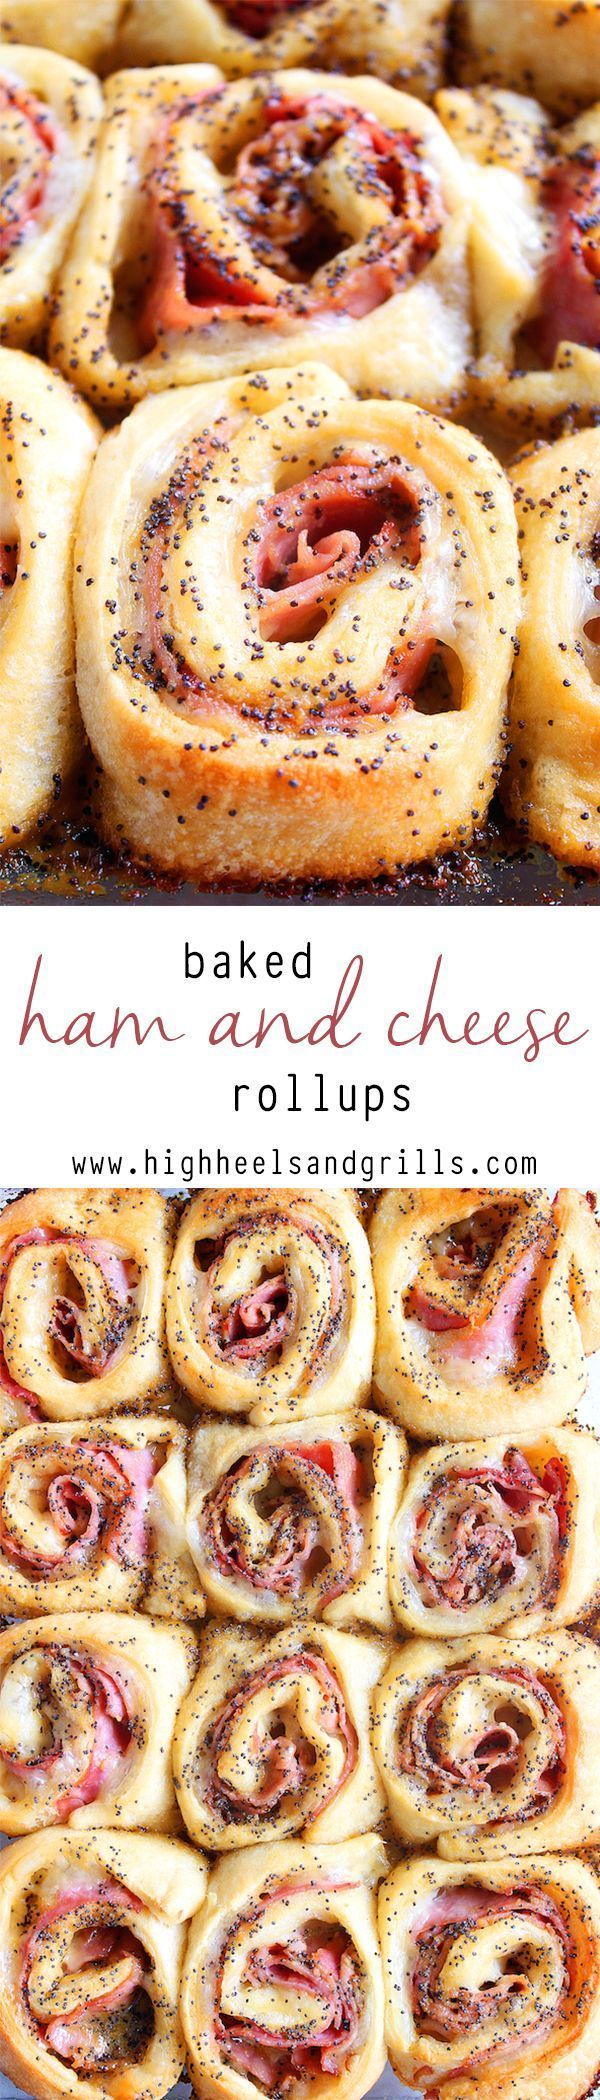 Baked Ham and Cheese Rollups | High Heels and Grills - http://doctorforlove.info/baked-ham-and-cheese-rollups-high-heels-and-grills